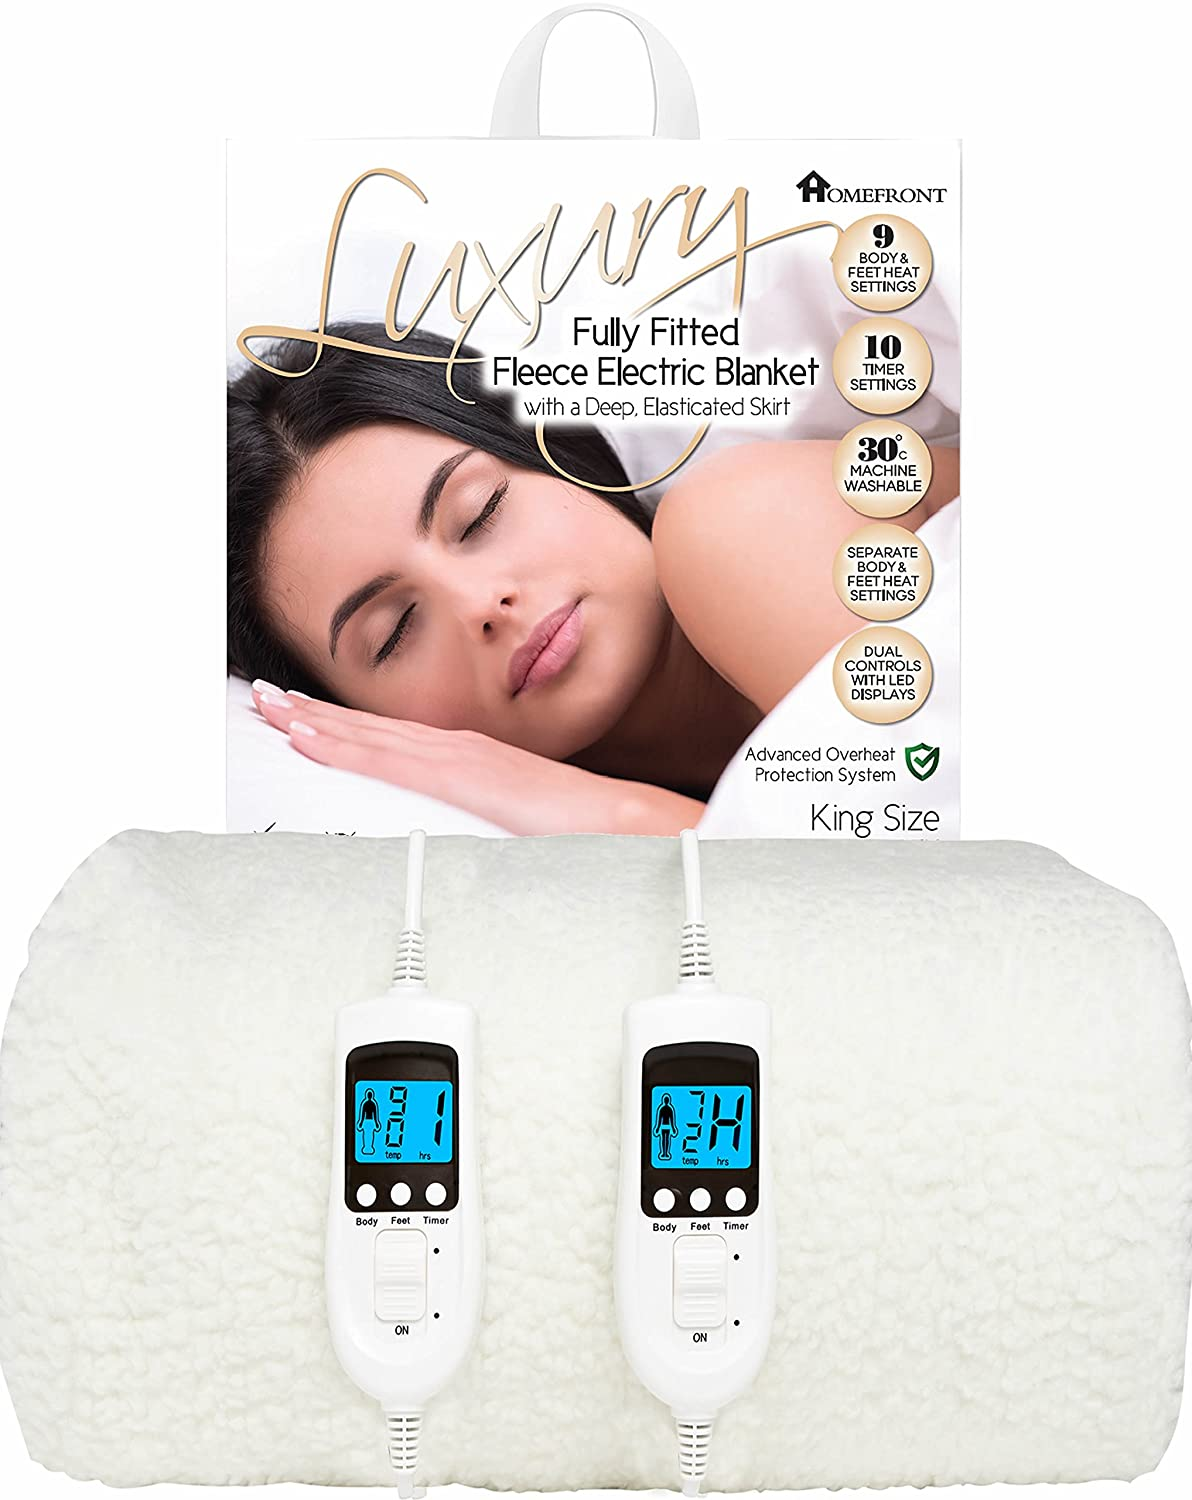 Homefront Electric Blanket King Size Dual Control Premium Fleece